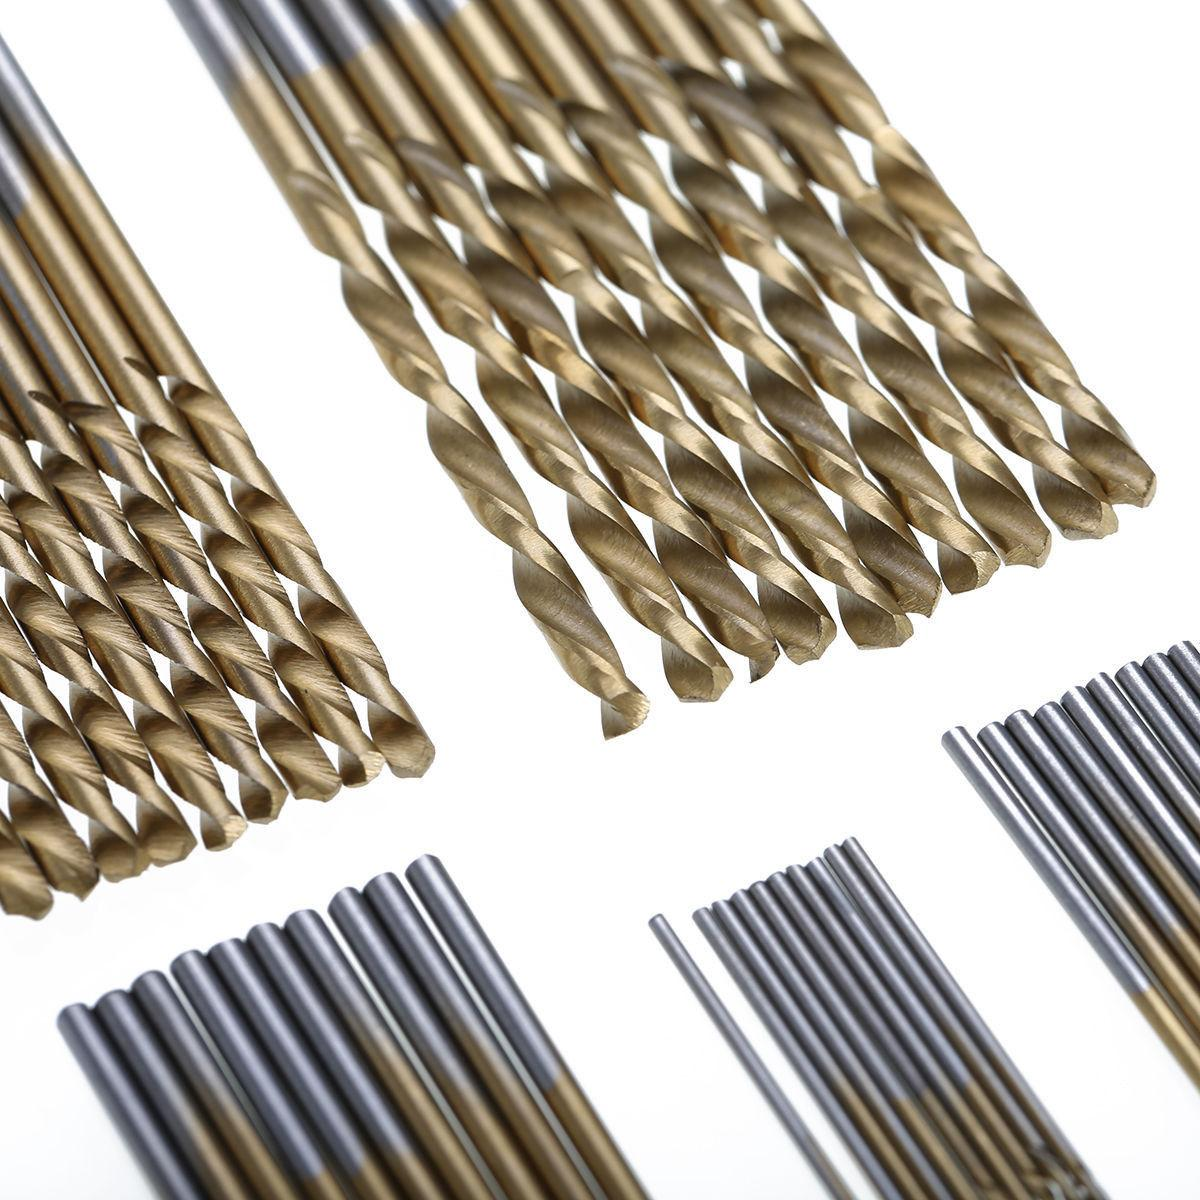 50Pcs Twist Hard Stainless 1mm-3mm